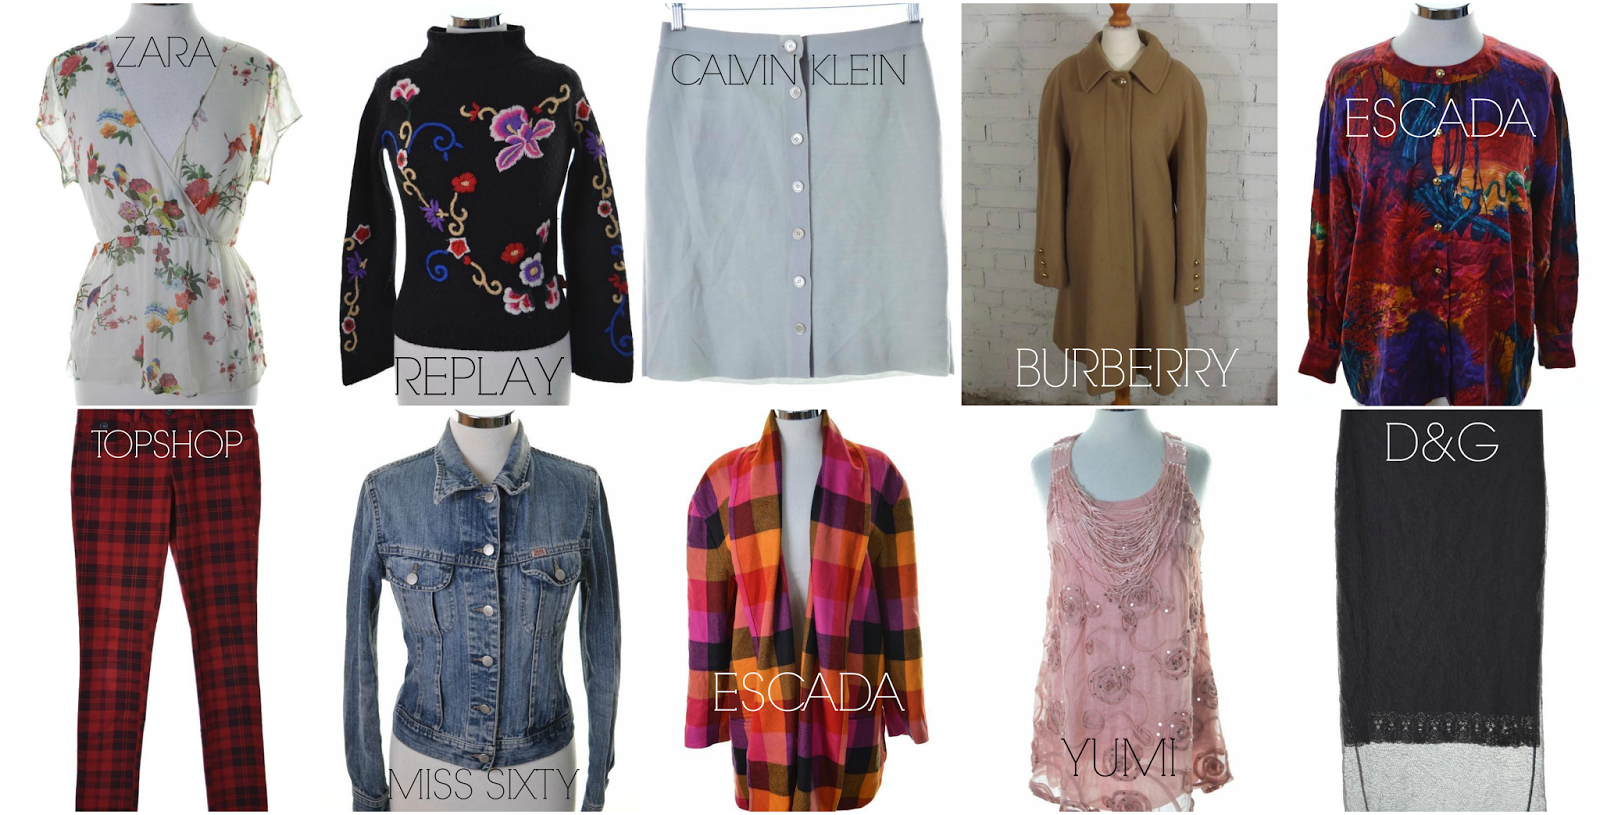 messina hembry designer vintage thrifting online burberry d&g calvin klein miss sixty topshop sara escada yumi replay